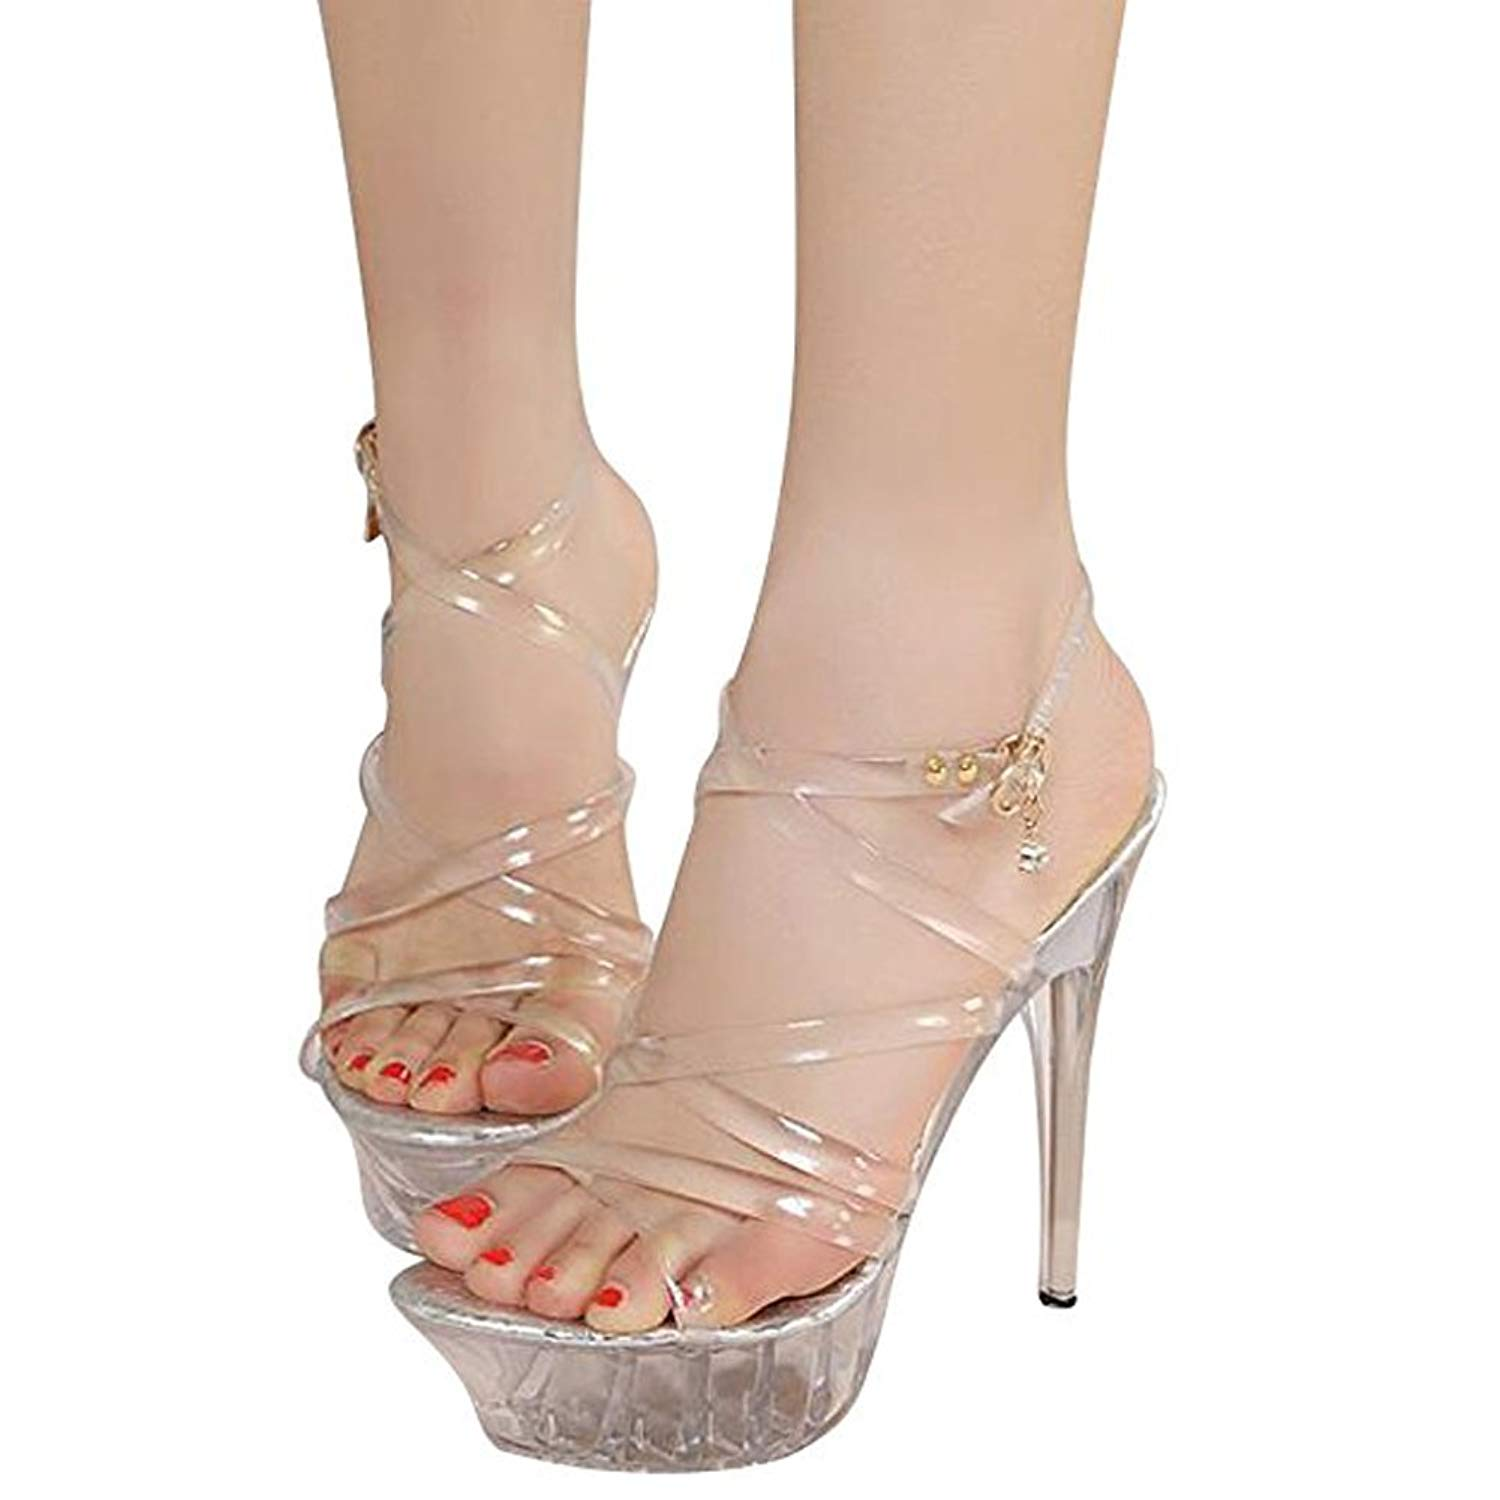 7f166e83e2e274 Get Quotations · Women s Cross Strappy Transparent Platform Stiletto High  Heels Dress Sandals